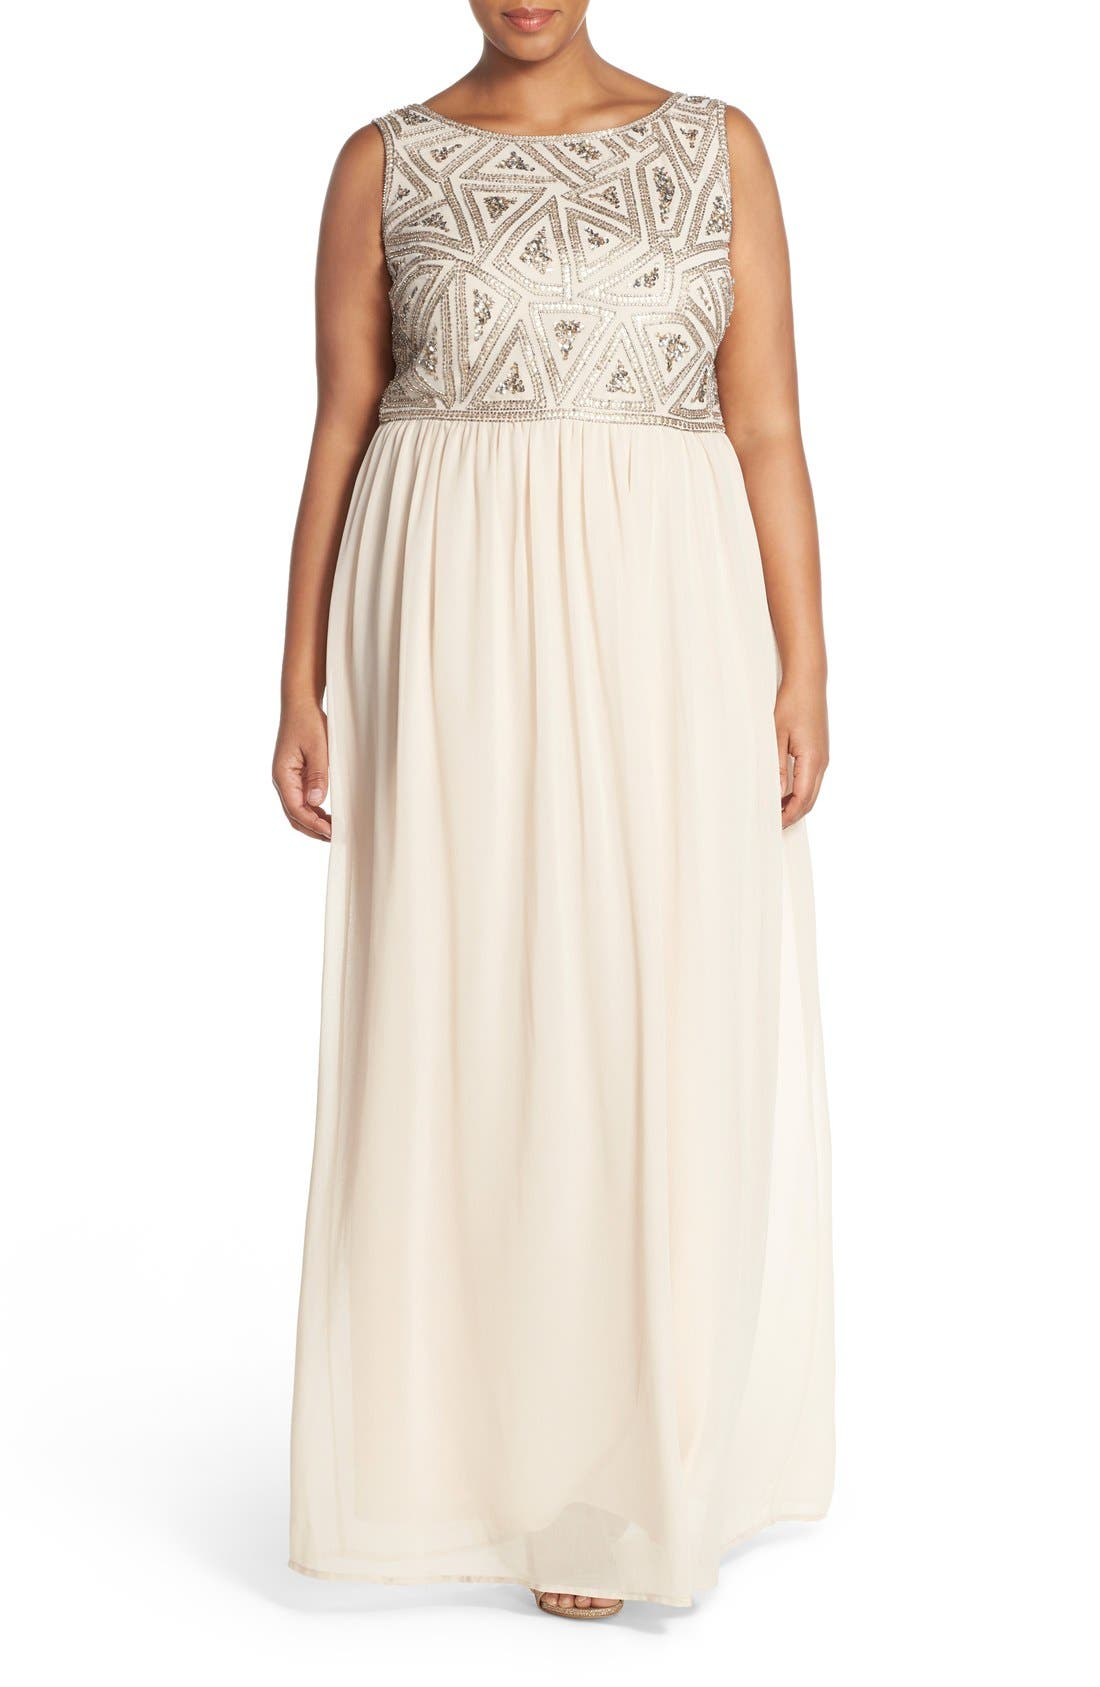 Adrianna Papell Beaded Bodice A-Line Gown (Plus Size)